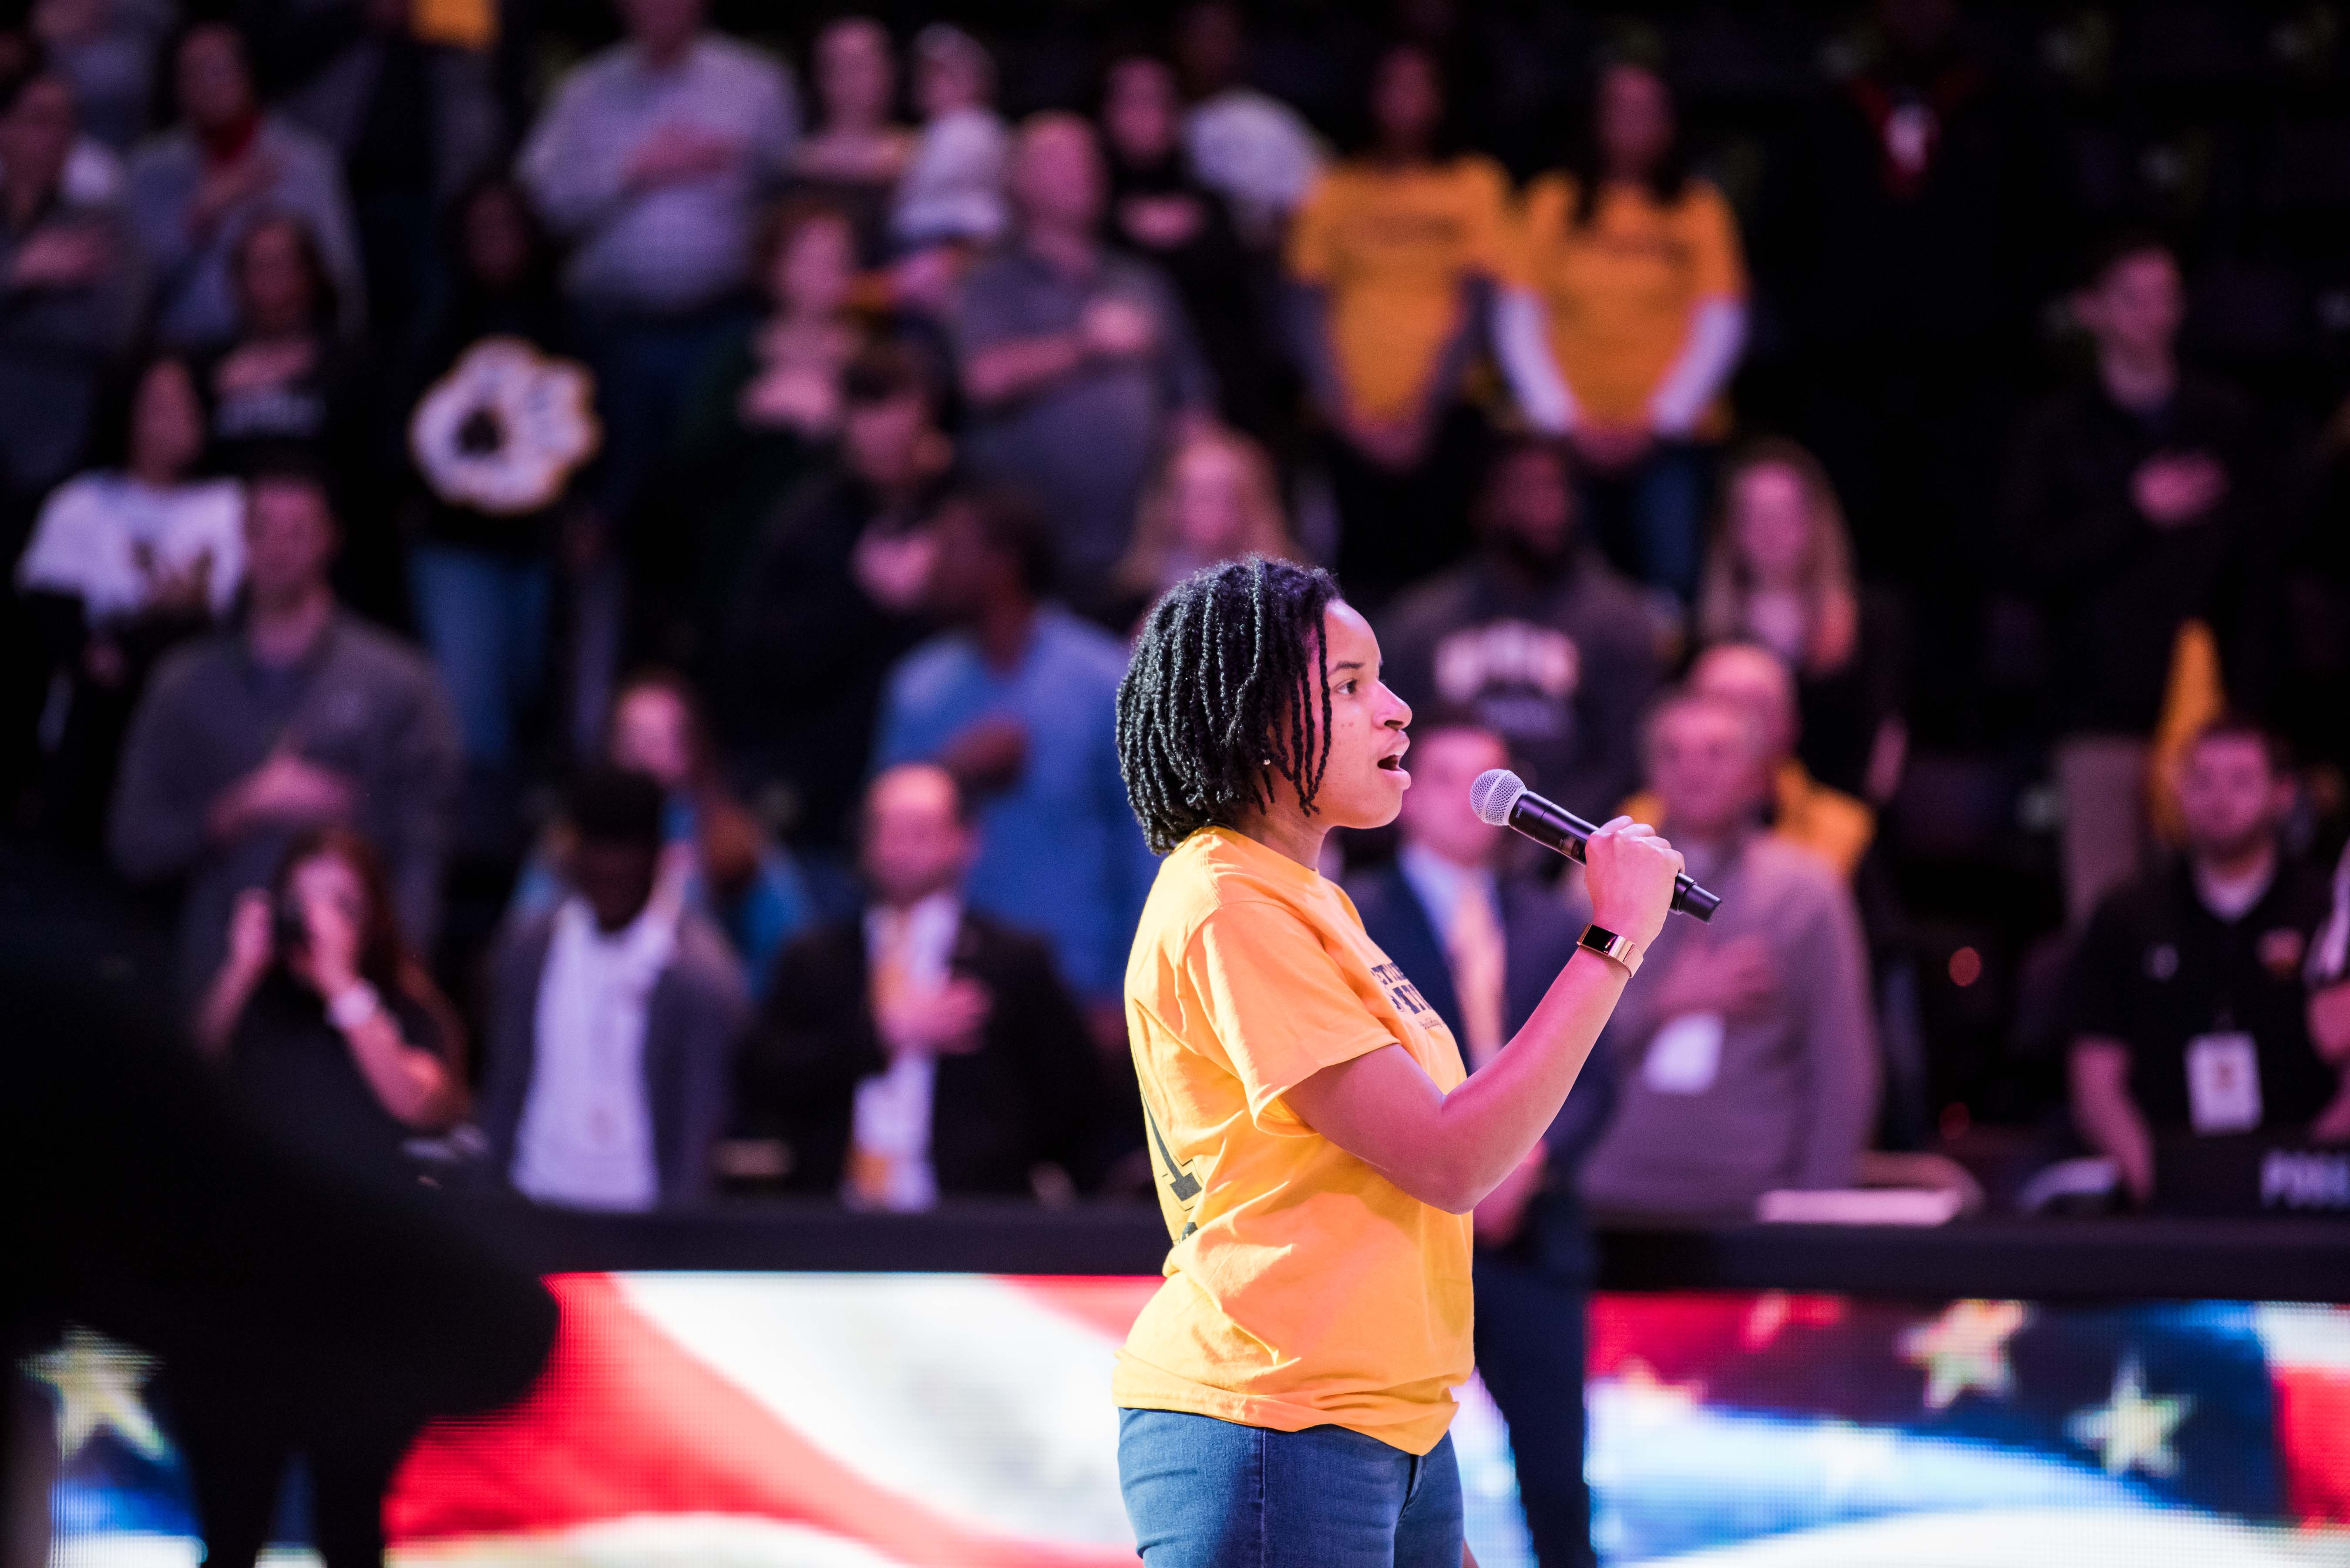 Woman sings for opening of event center